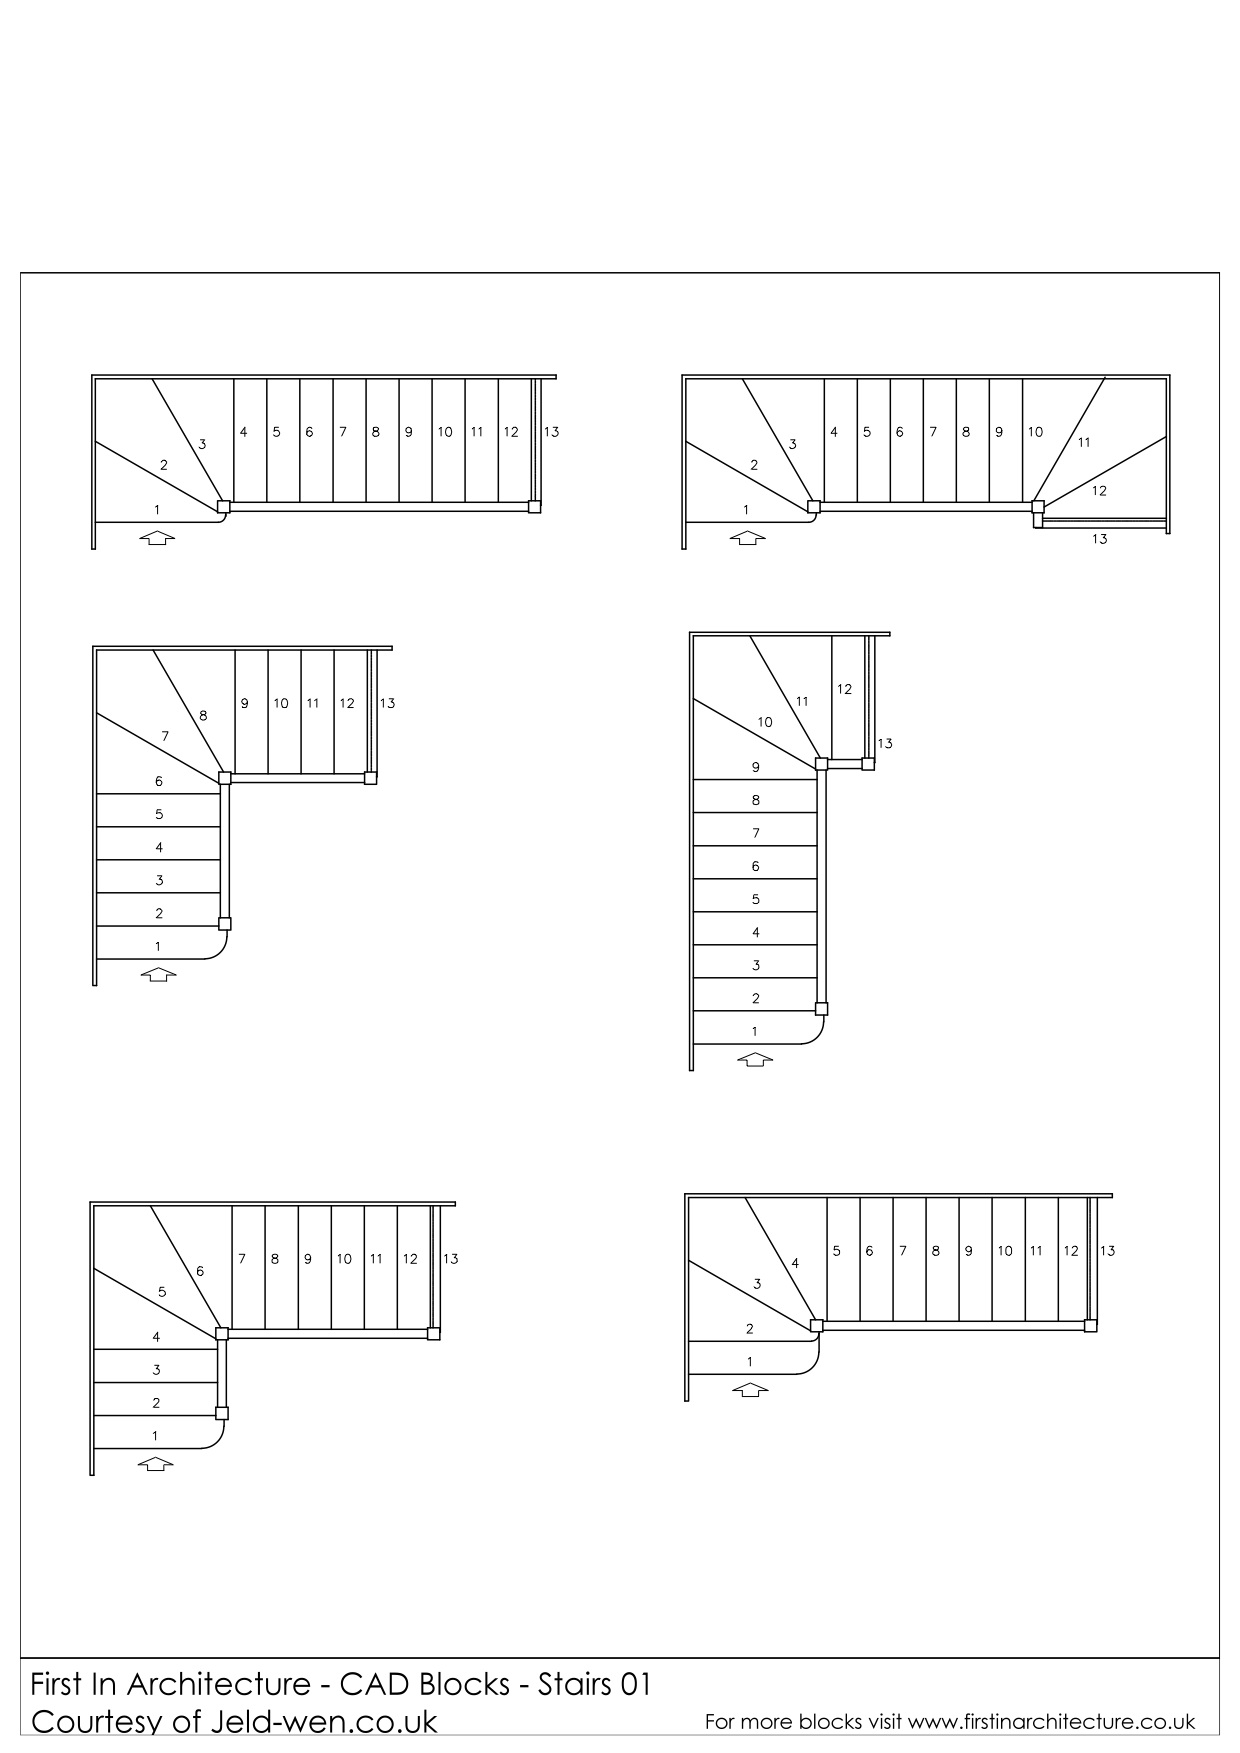 free cad blocks stairs first in architecture download now